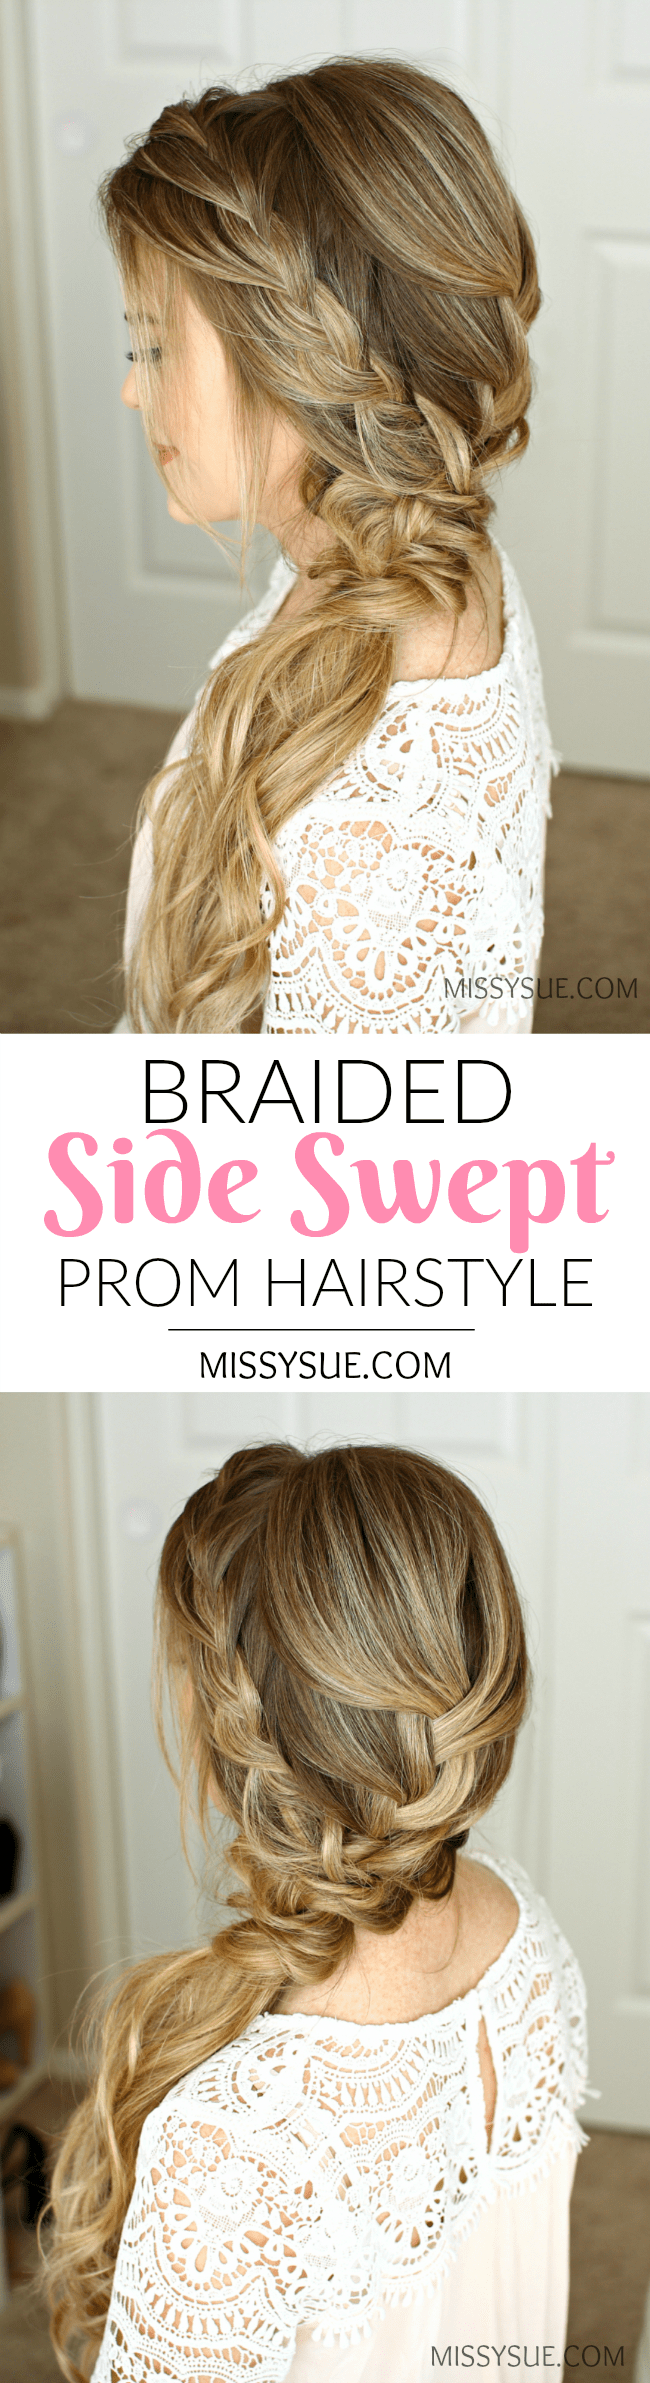 Braided Side Swept Prom Hairstyle   MISSY SUE